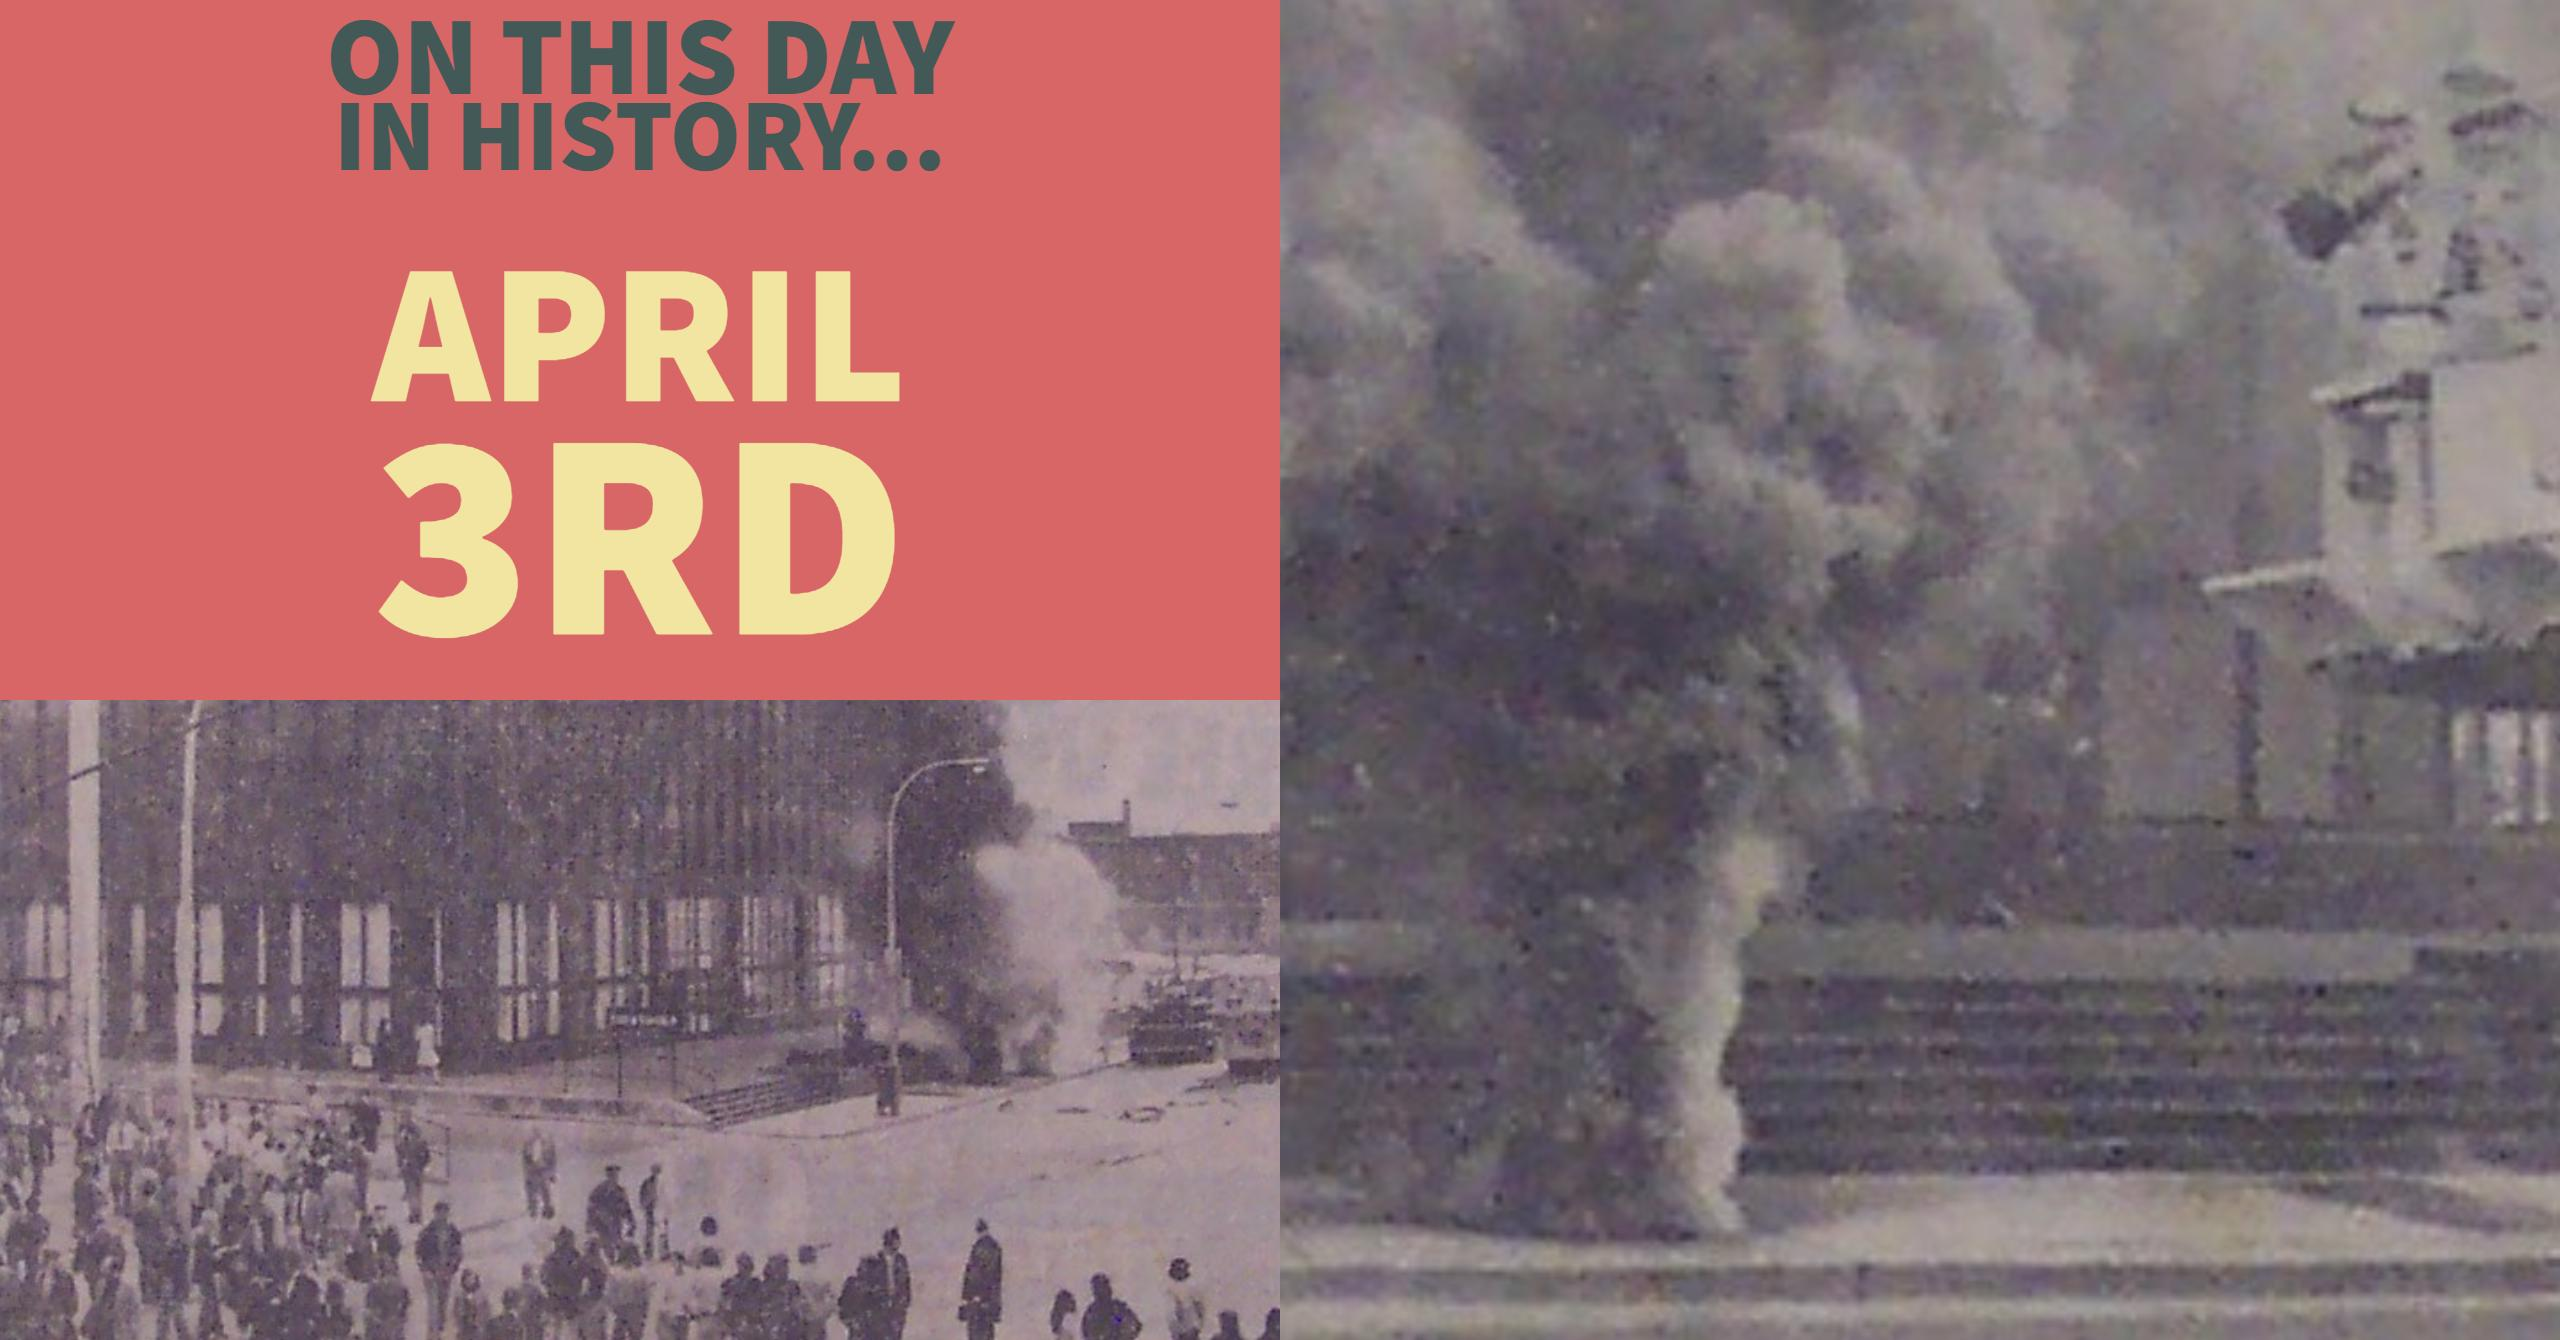 On this day in history… April 3rd